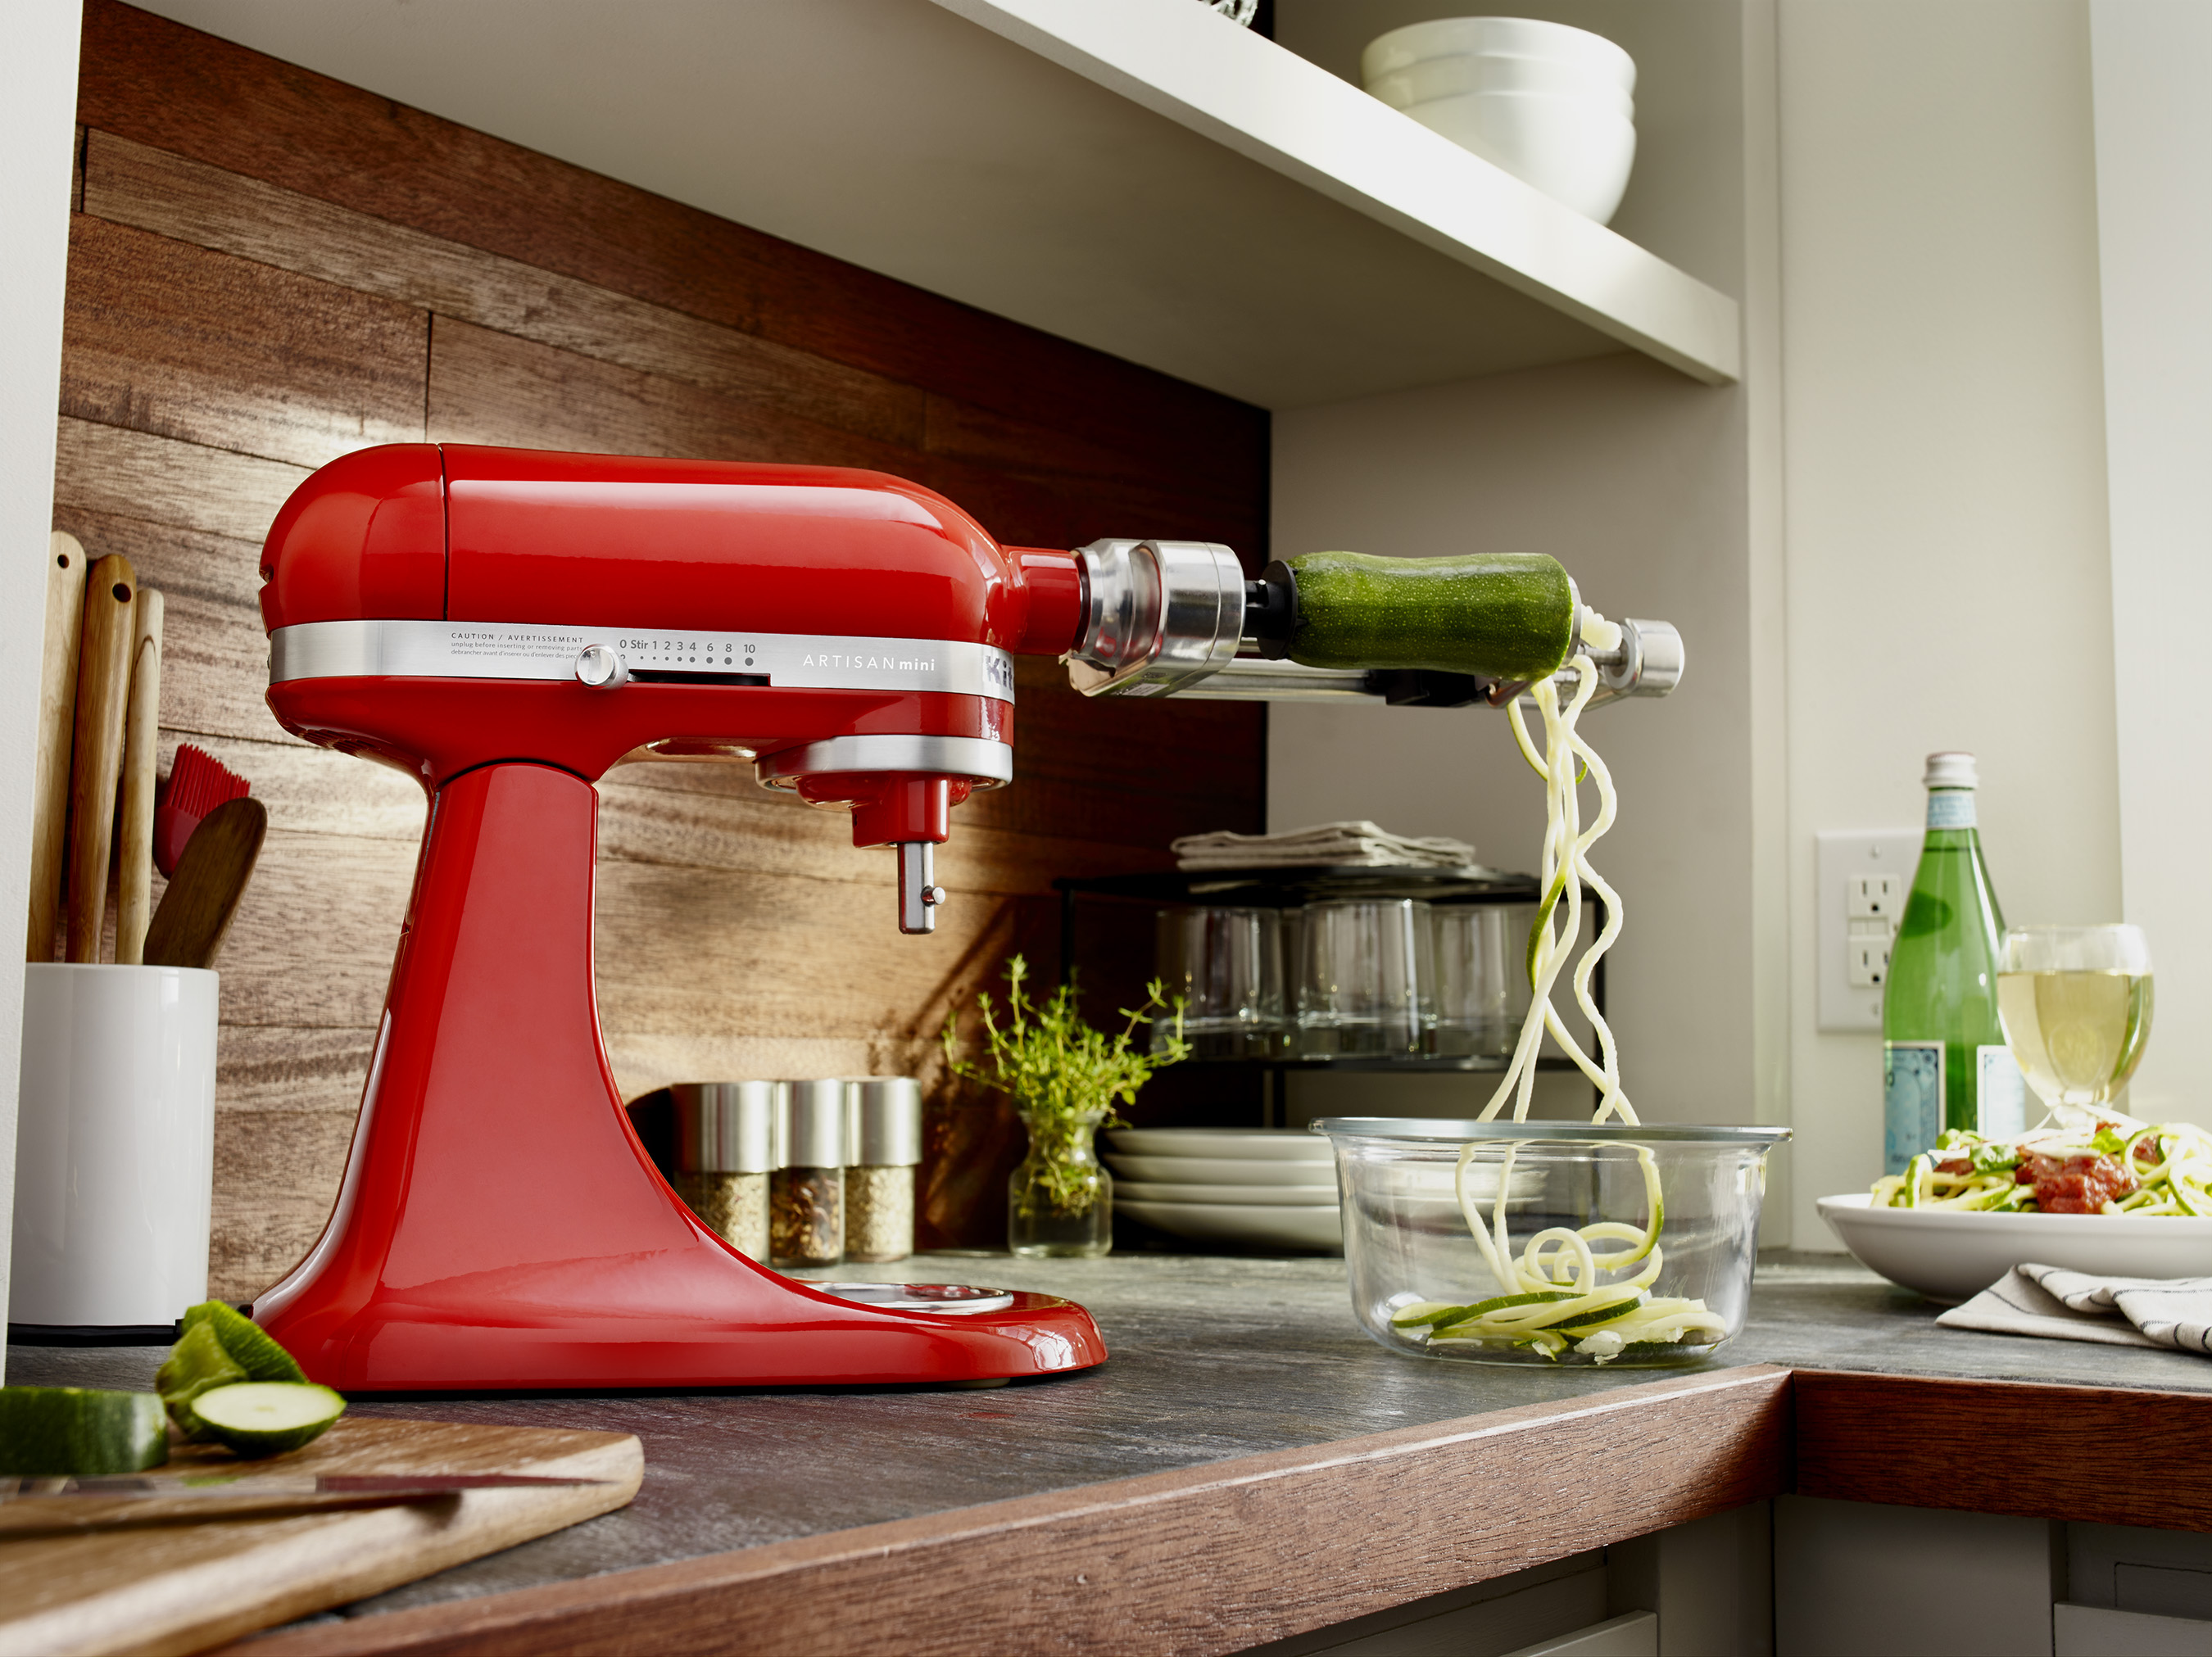 The new Artisan® Mini Stand Mixer accommodates all optional hub-based attachments available for larger models.